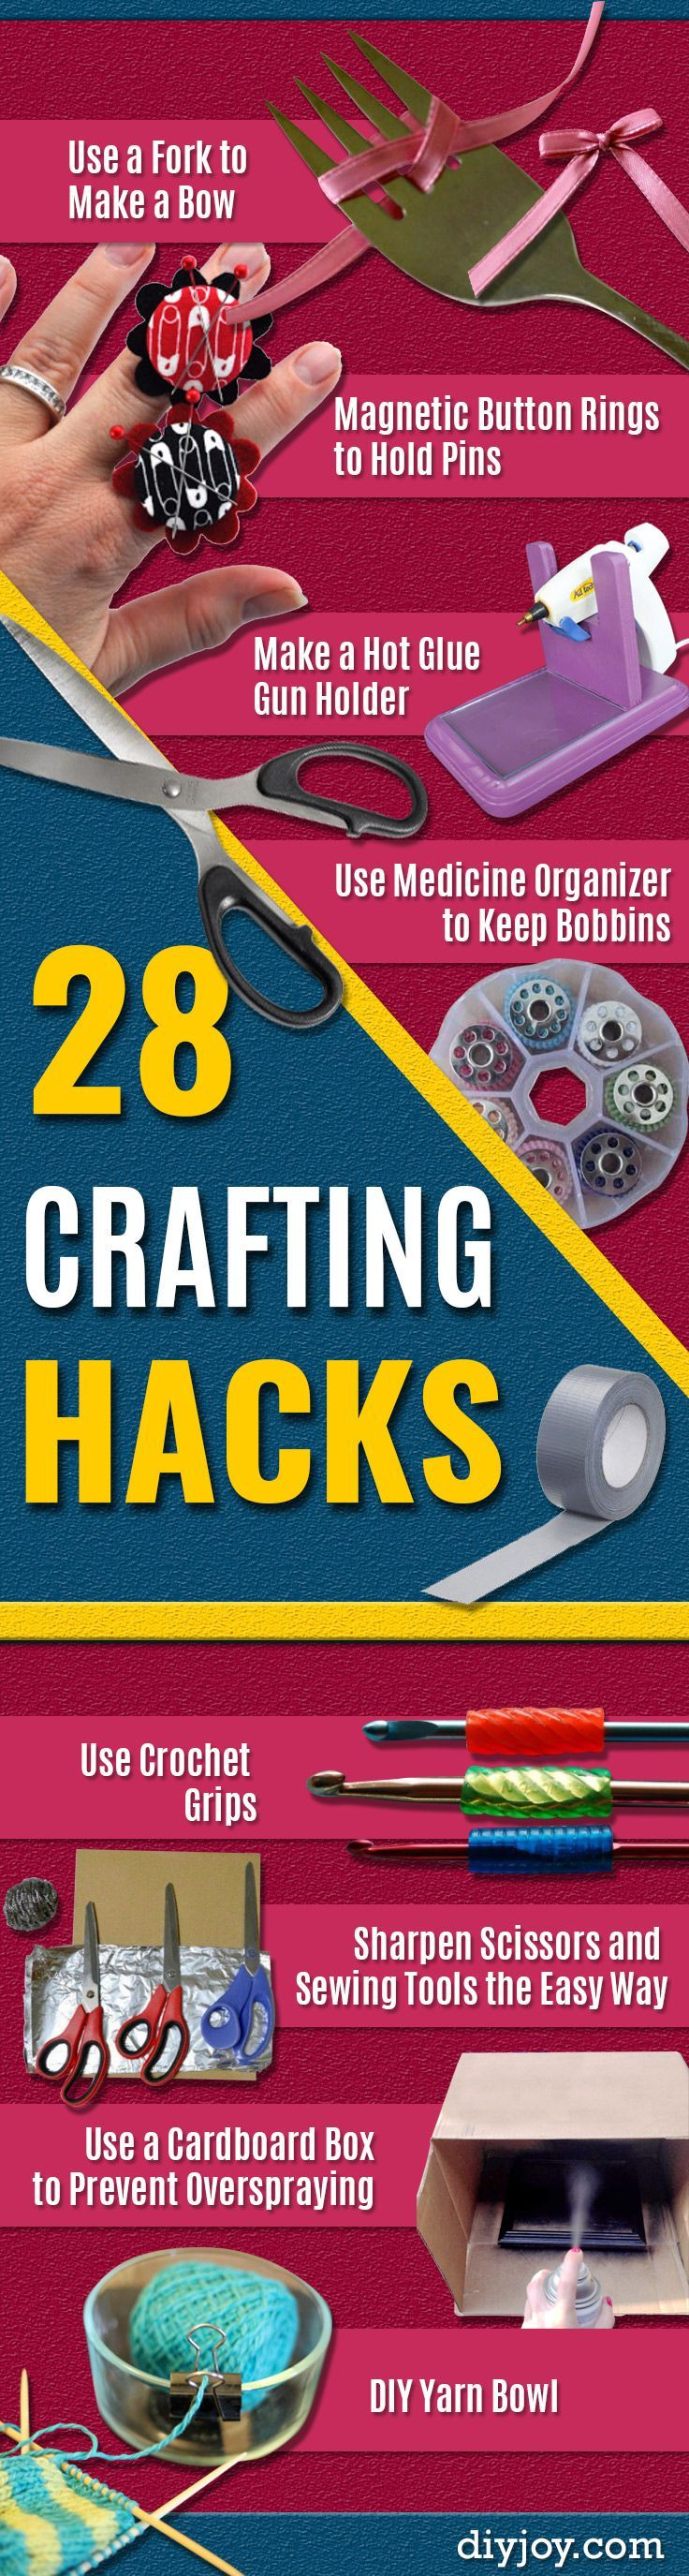 DIY Crafting Hacks - Easy Crafting Ideas for Quick DIY Projects - Awesome Creative, Crafty Ways for Dollar Store, Organizing, Yarn, Scissors and Pom Poms http://diyjoy.com/diy-crafting-hacks